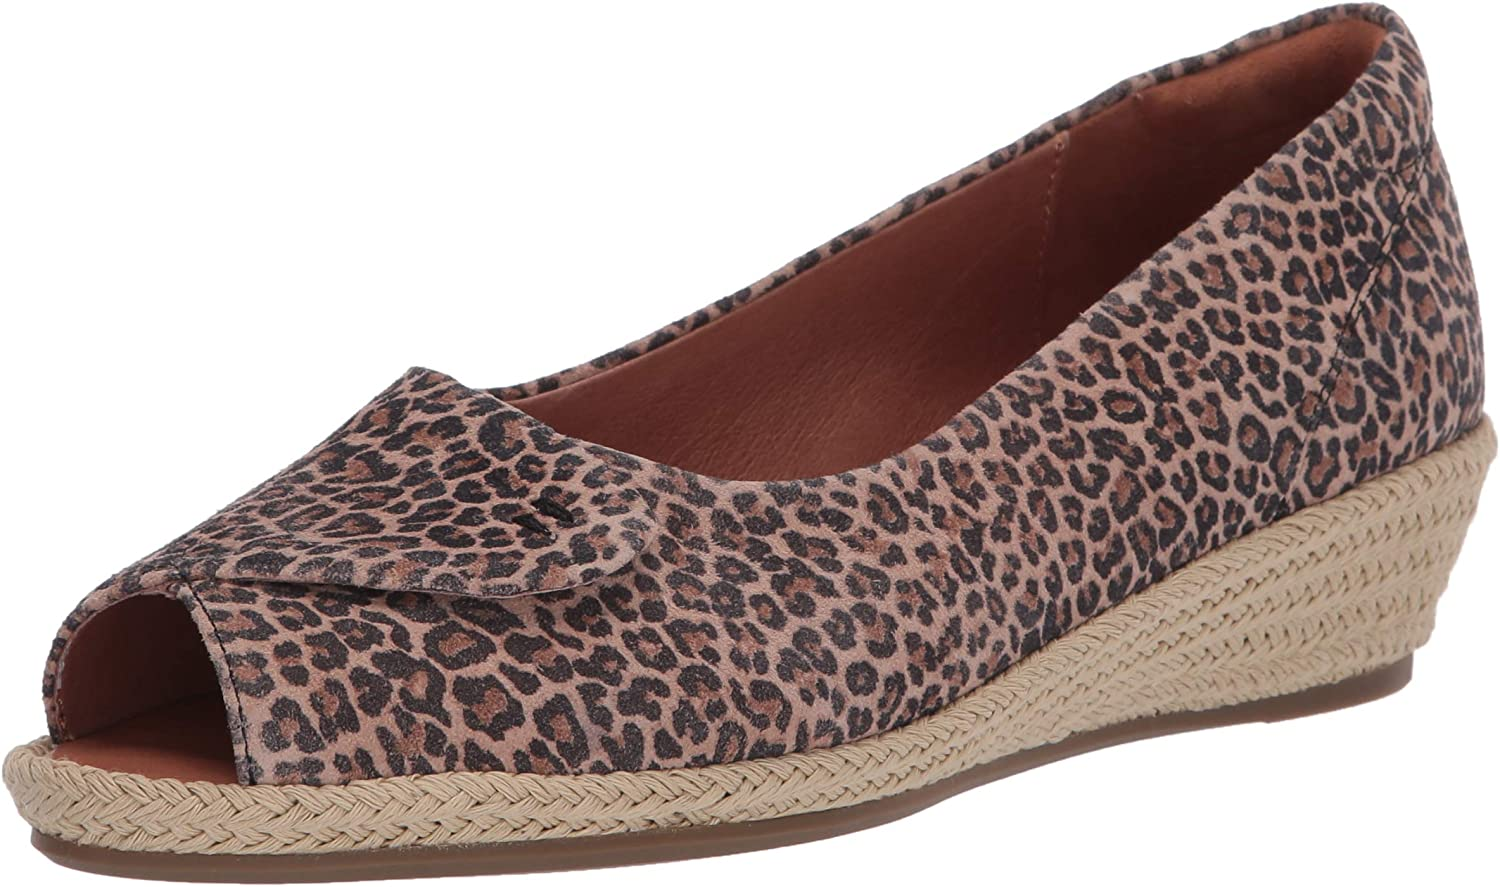 Free shipping on posting reviews Max 61% OFF Gentle Souls Women's Demi Sandal Espadrille Wedge